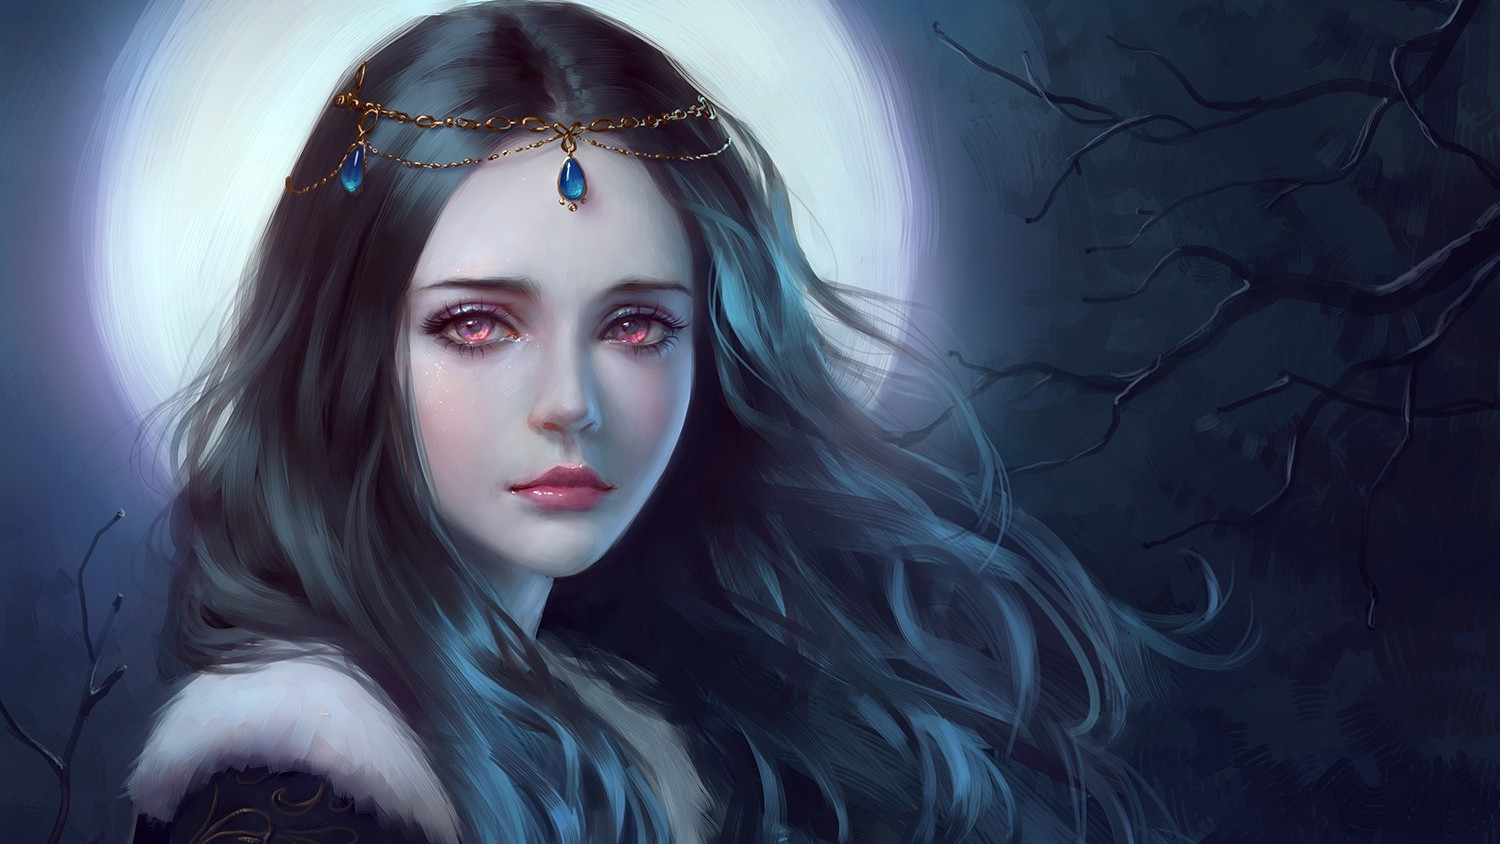 General 1500x844 fantasy art women hair   princess night red eyes crown dark trees